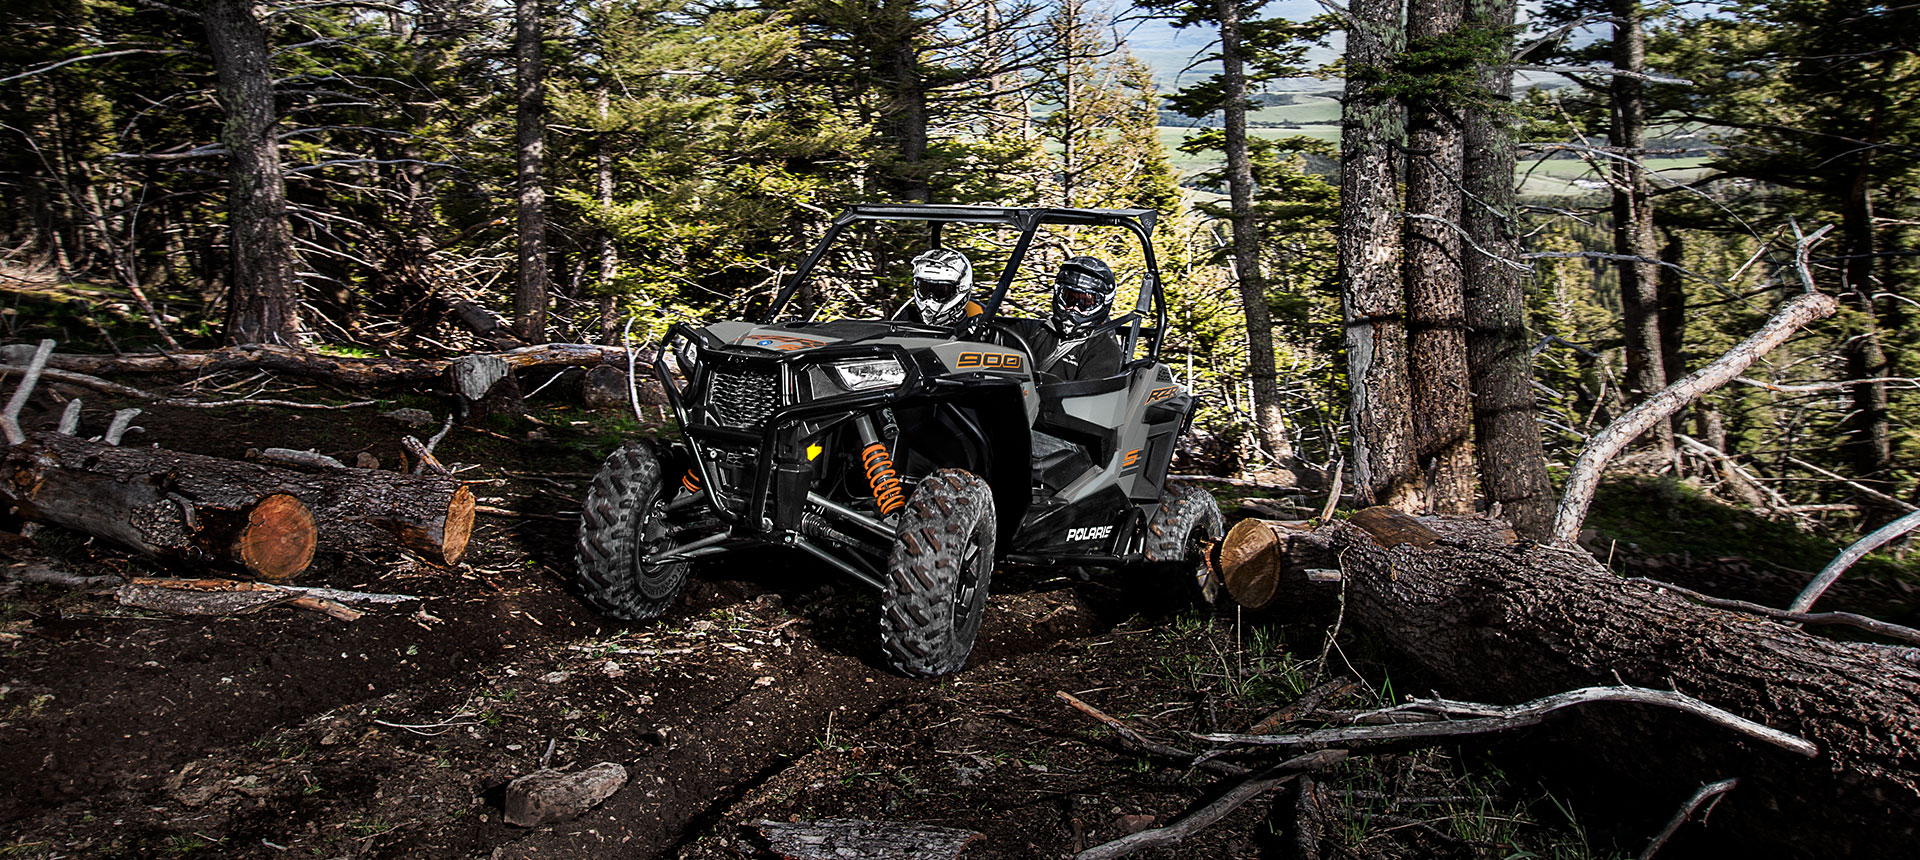 2019 Polaris RZR S 900 in Berne, Indiana - Photo 2